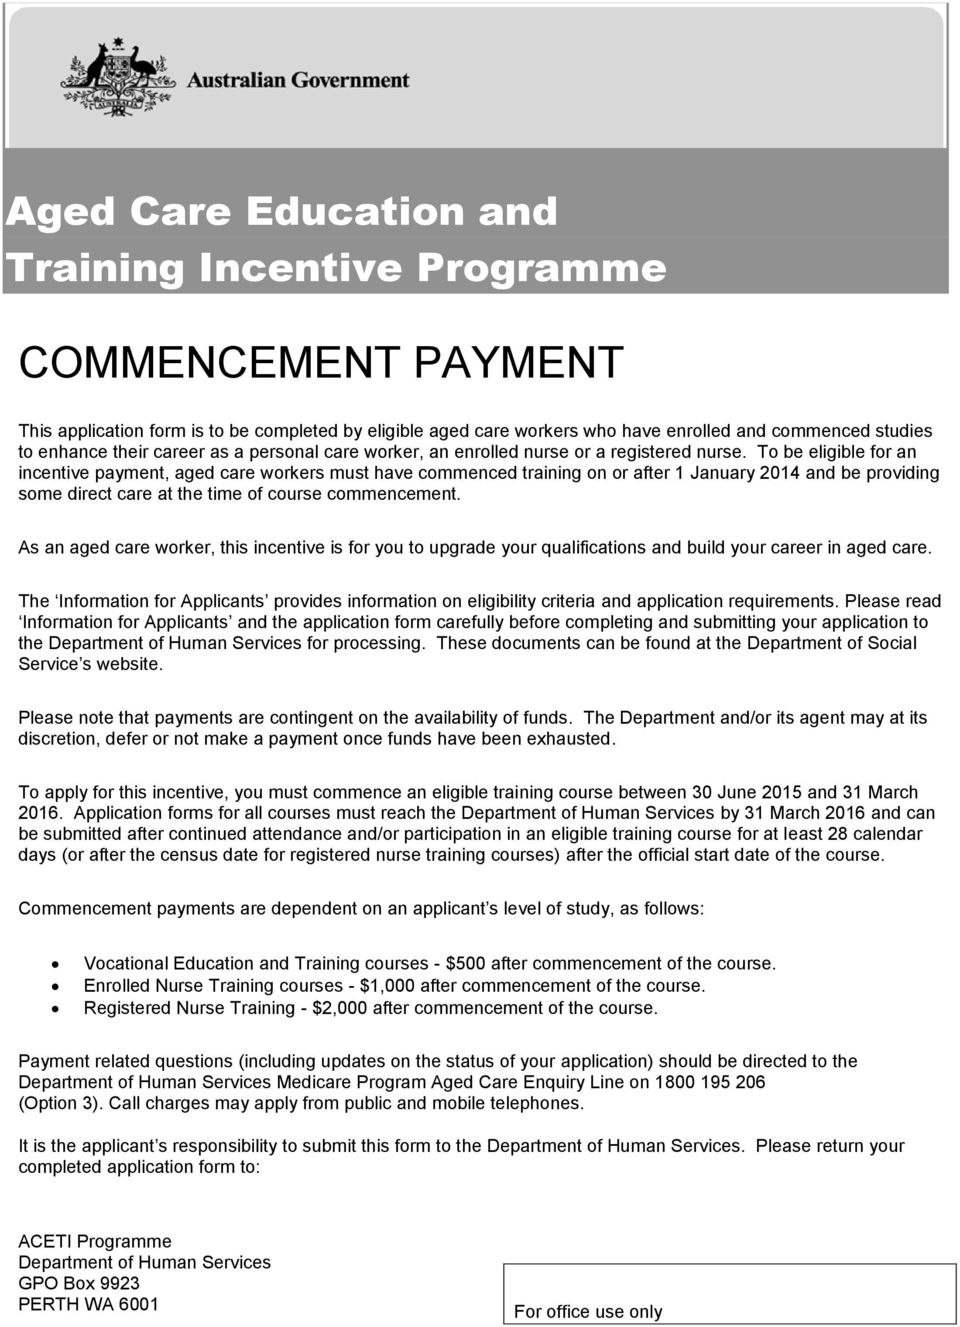 To be eligible for an incentive payment, aged care workers must have commenced training on or after 1 January 2014 and be providing some direct care at the time of course commencement.